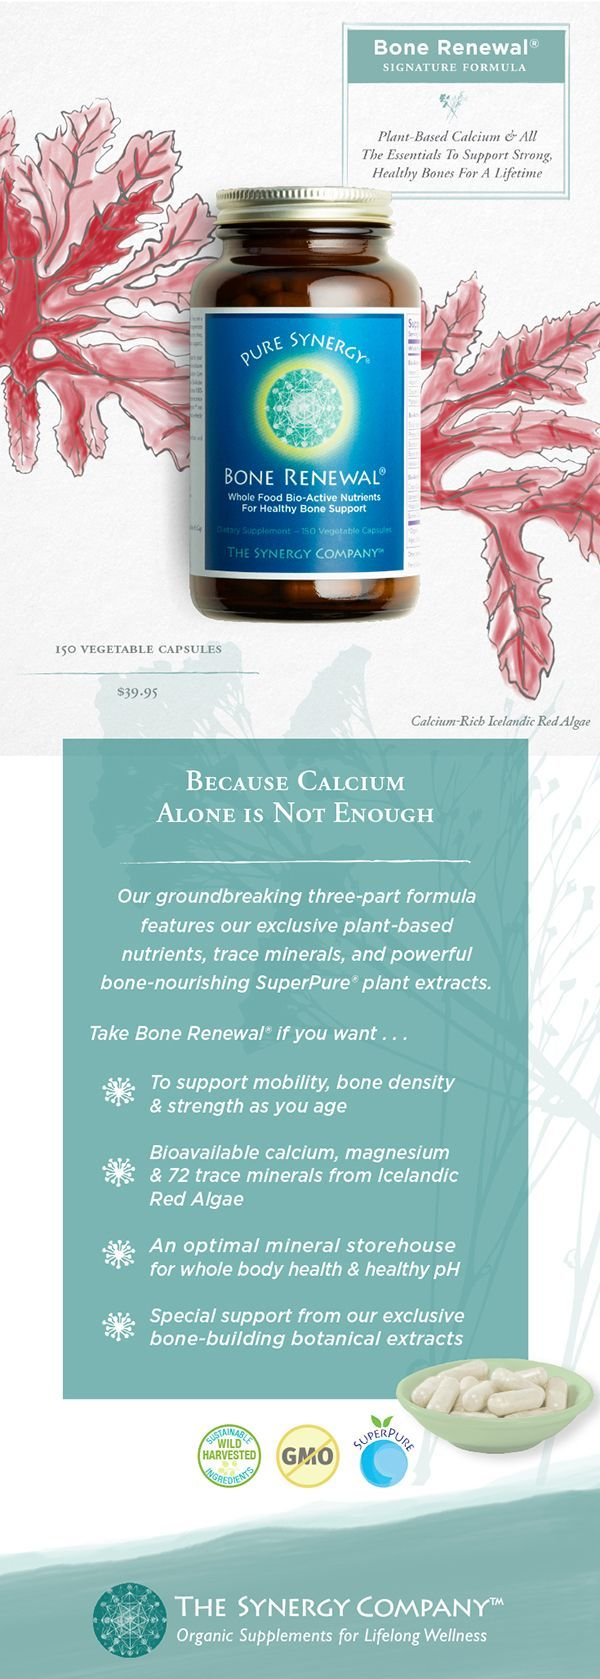 Bone Renewal is an unsurpassed, comprehensive solution for optimal bone health with plant-based bioavailable calcium, magnesium, vitamins D3 and much more. Shop now.